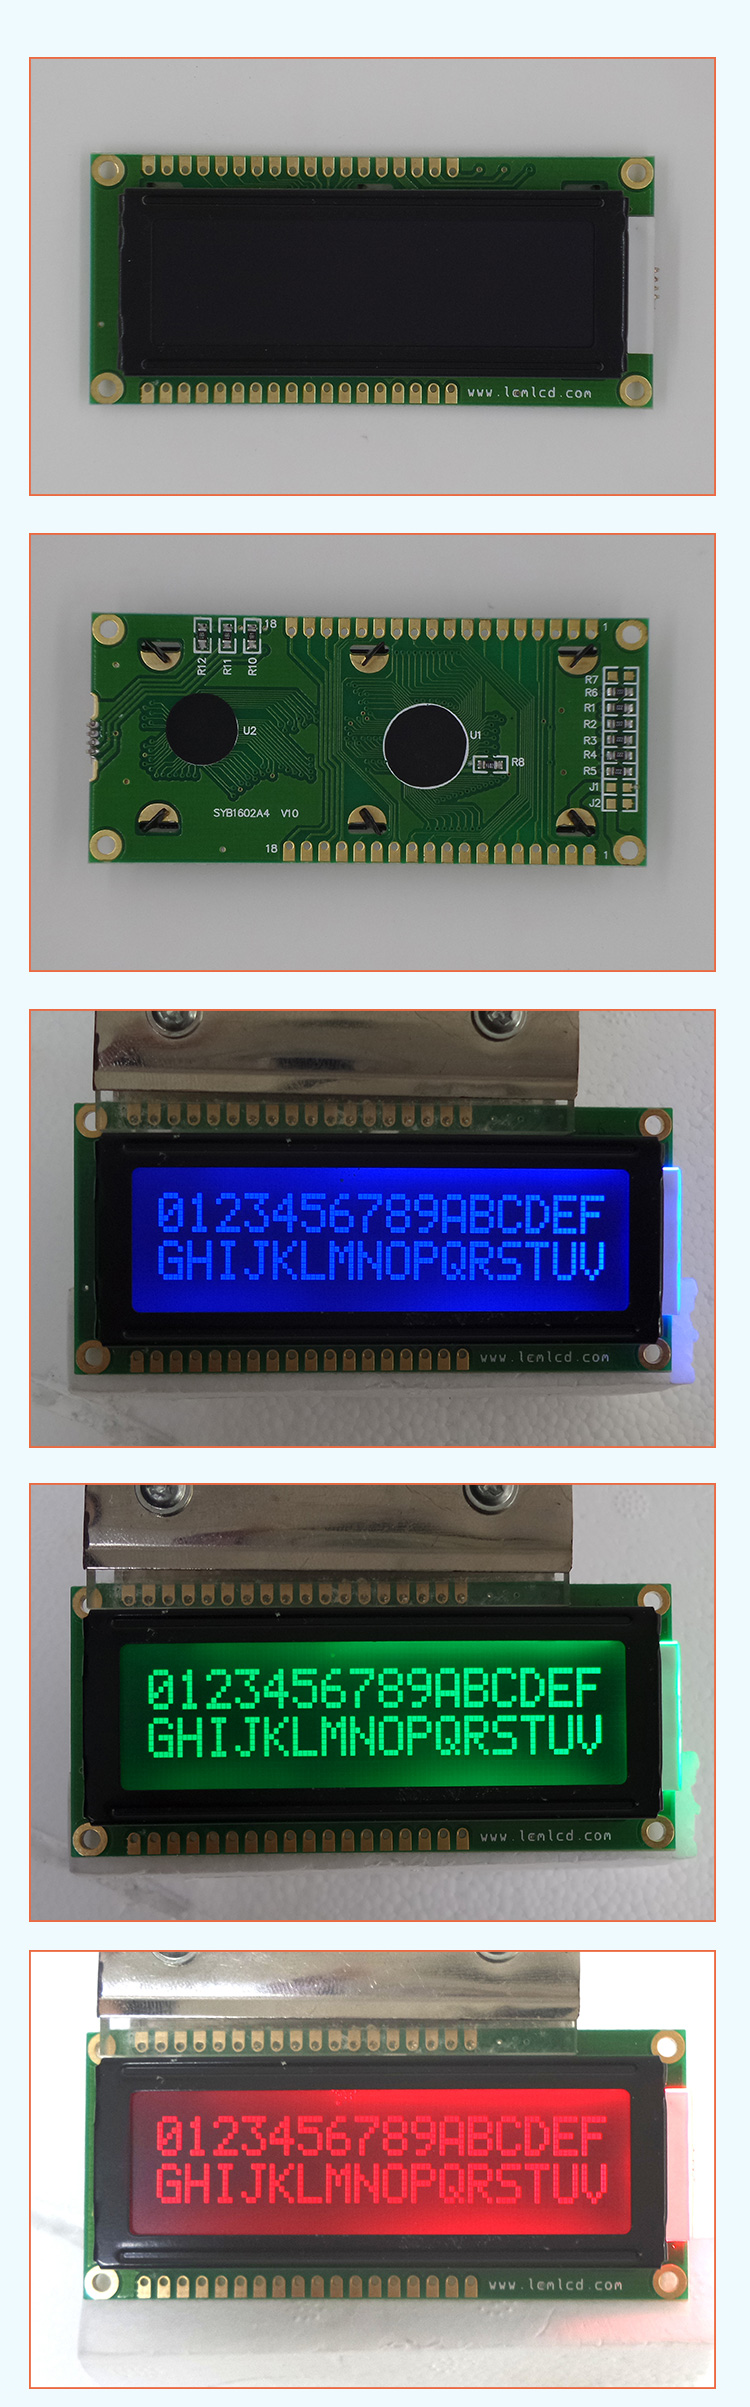 TCC(1602A) outdoor sunlight readable 16x2 character type lcd display screen 18 pin 1602 character lcd module